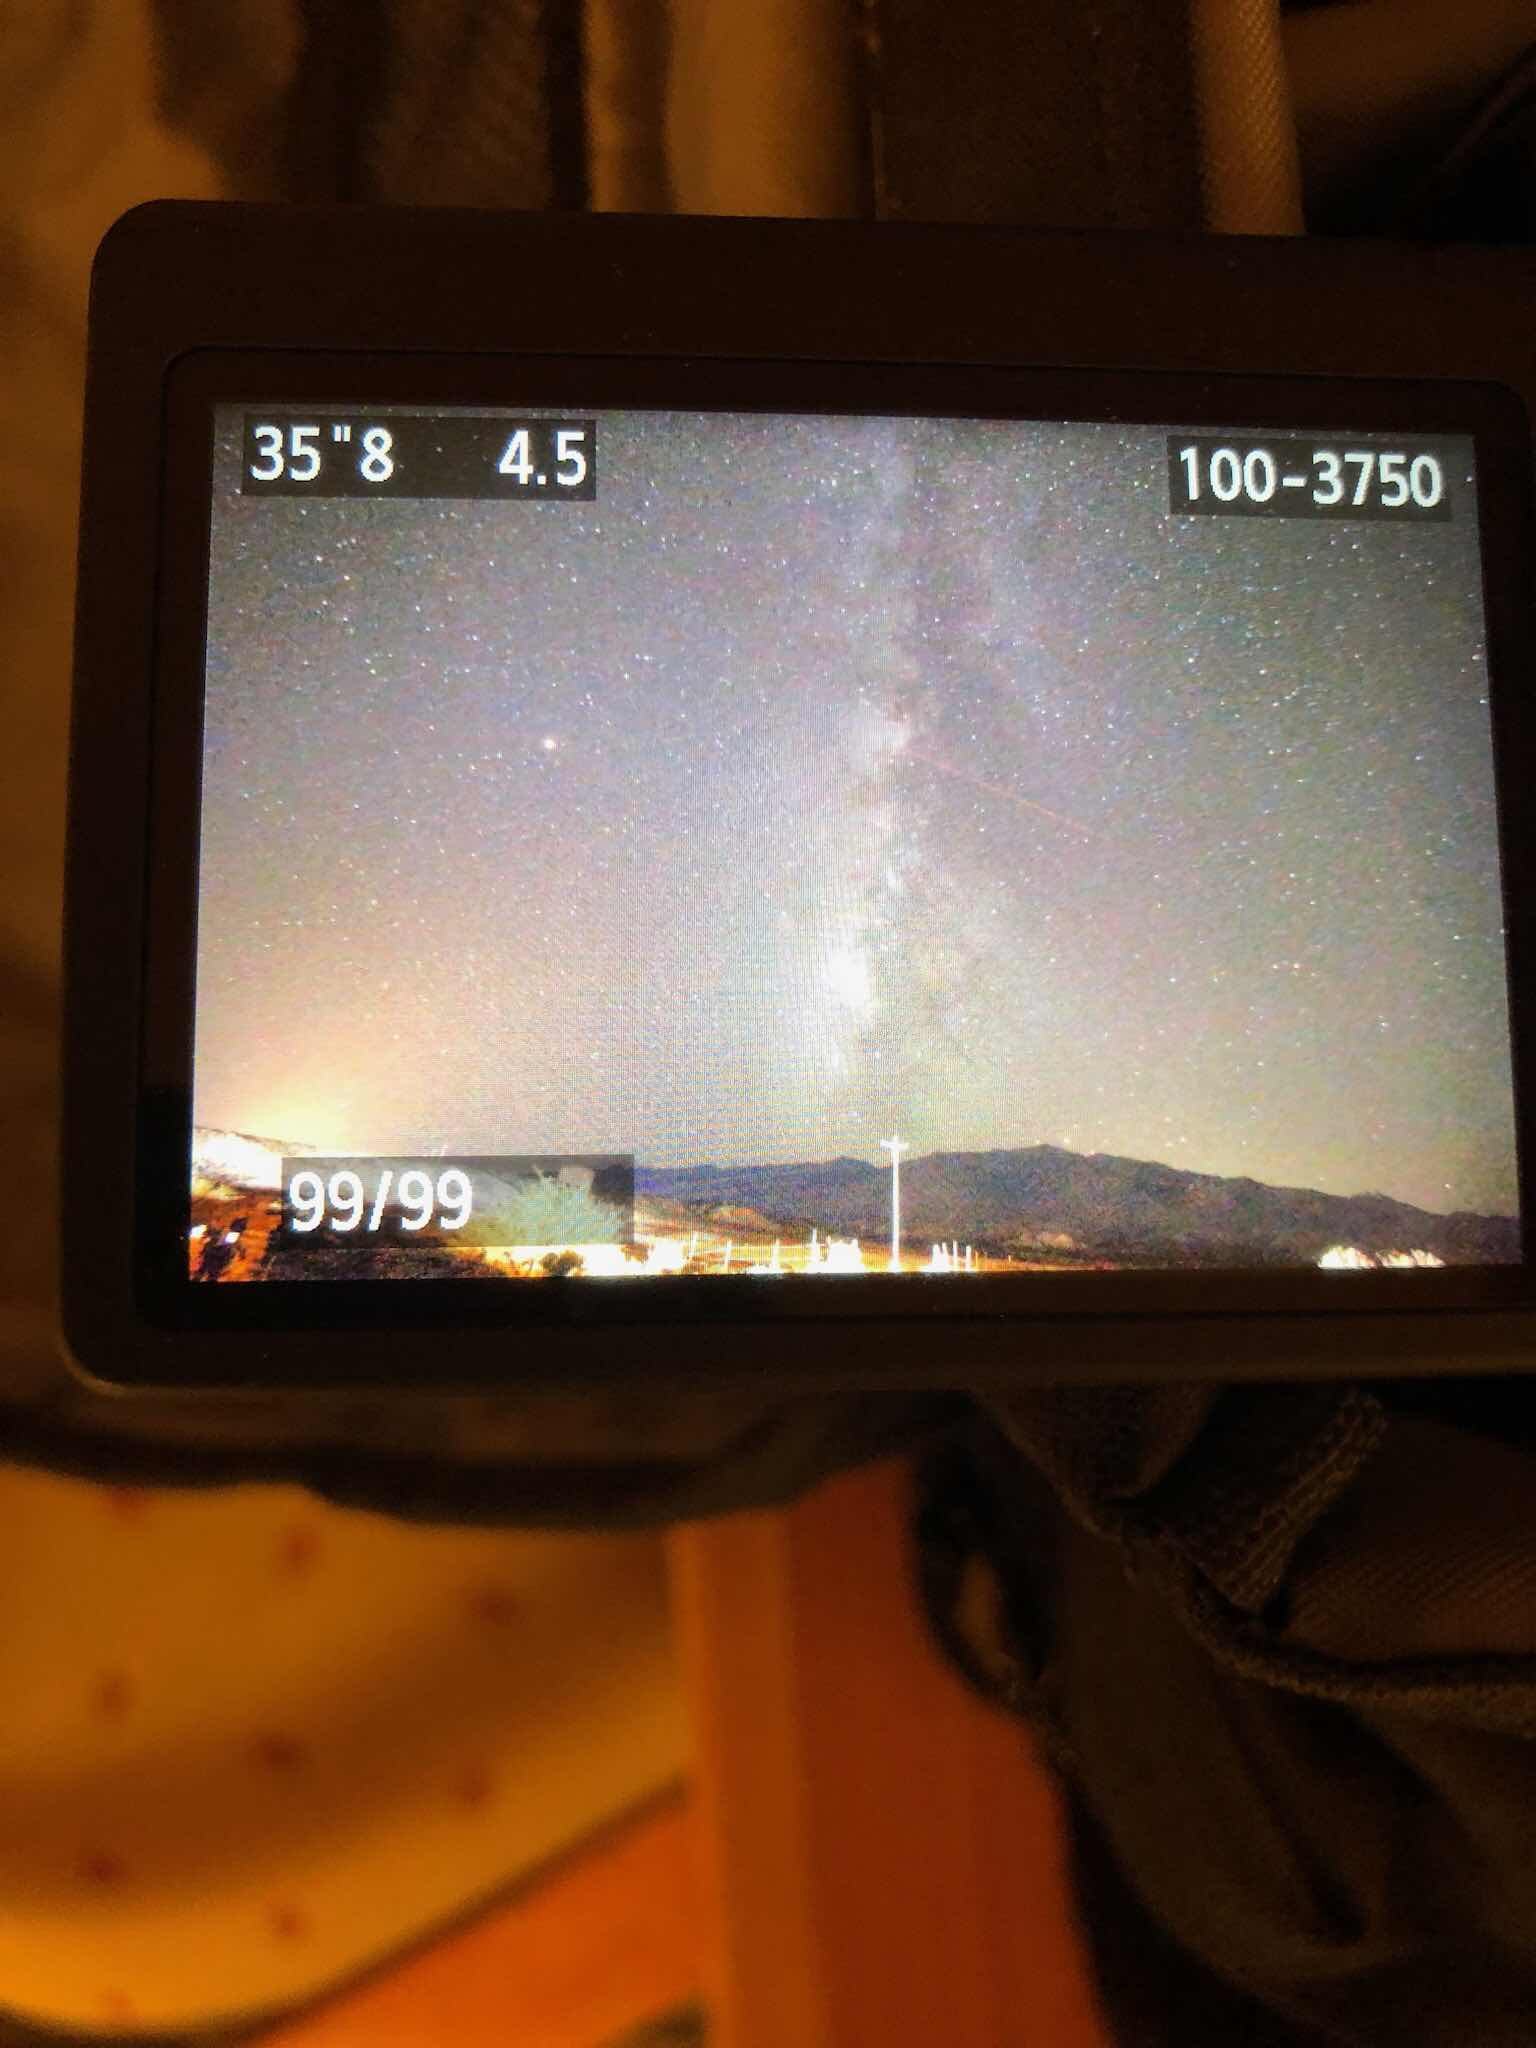 Just look up in Safford, Arizona and see the Milky Way, 10mm DSLR, 35 seconds (Source: Palmia Observatory)